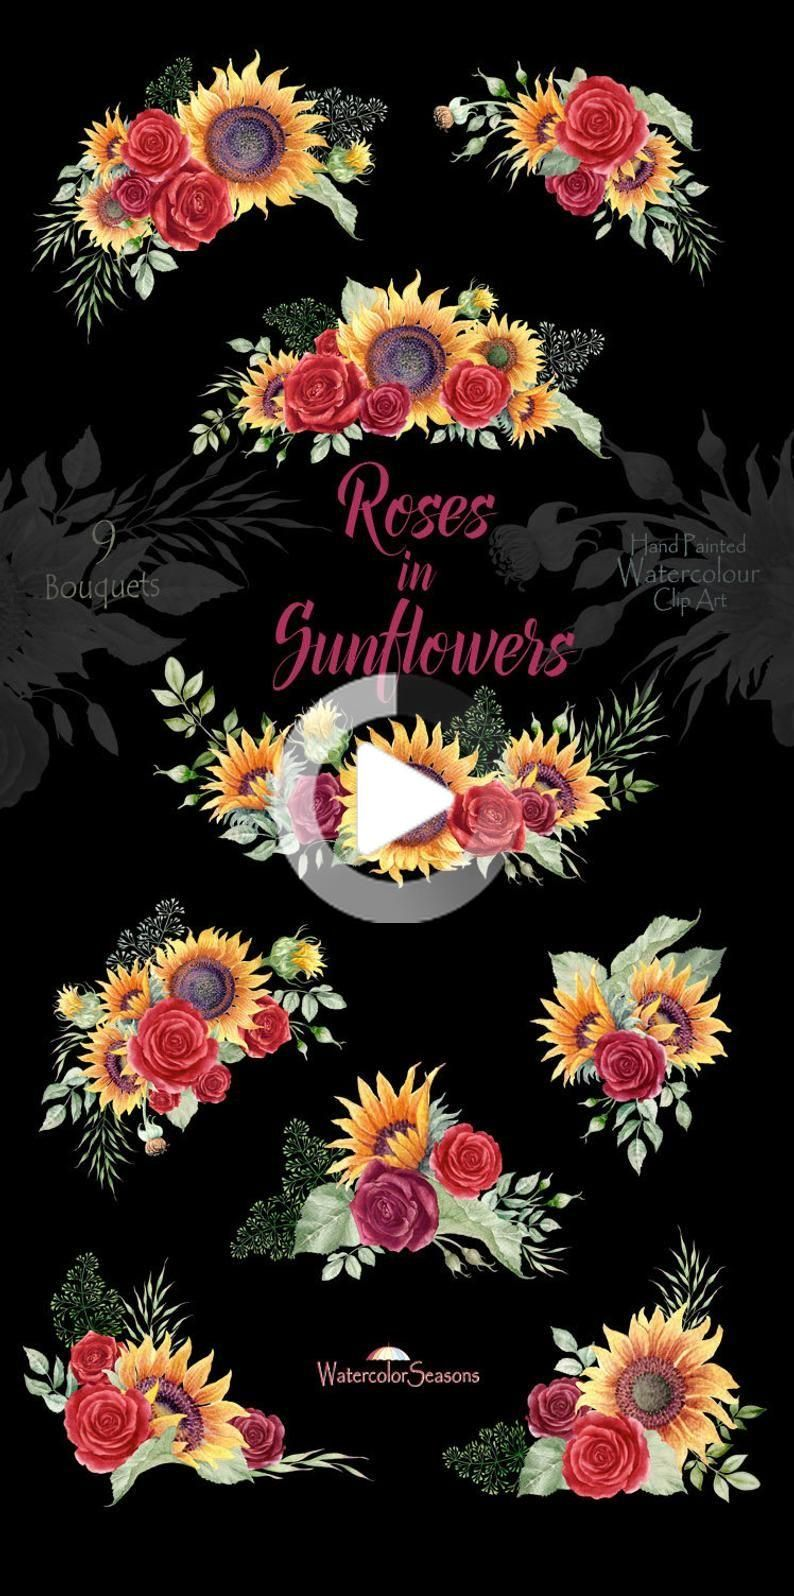 Roses in Sunflowers Watercolor bouquets - Autumn clipart ...